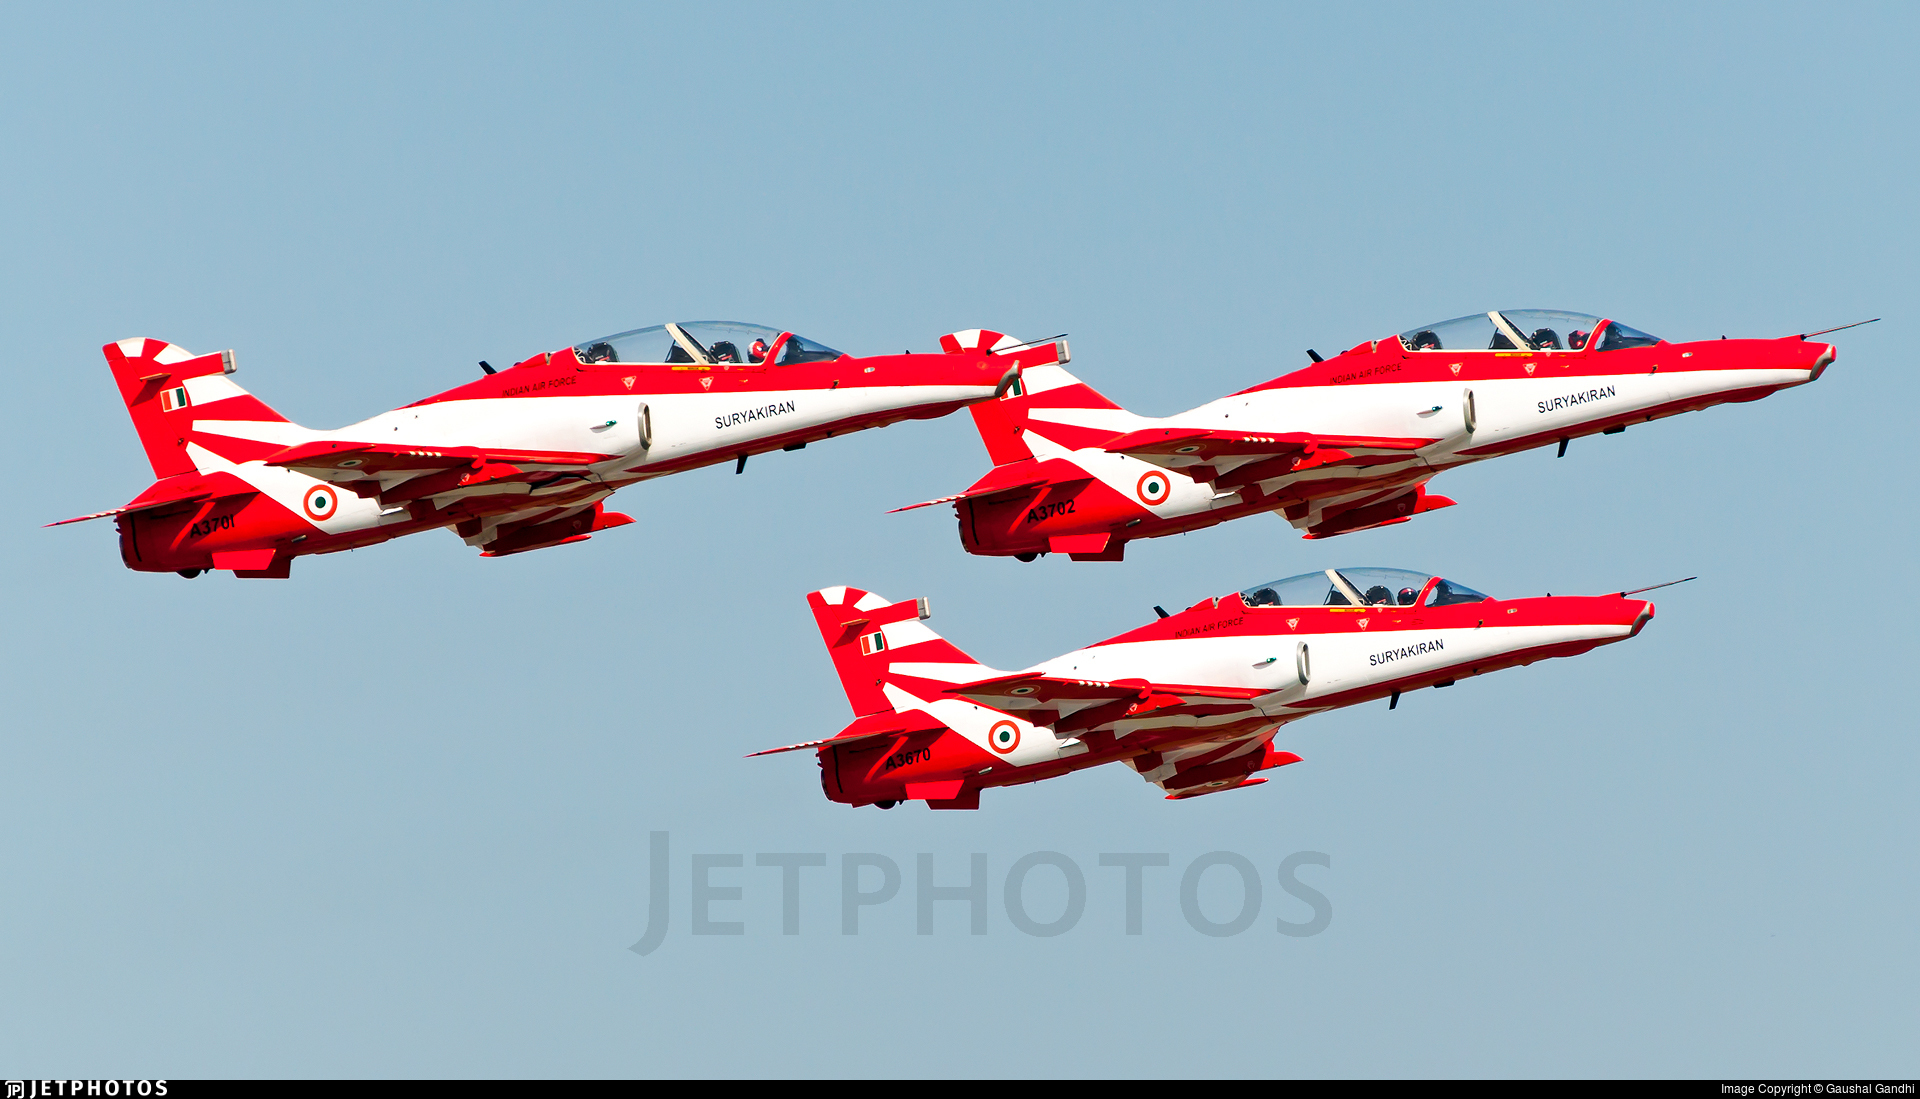 A3702 - British Aerospace Hawk Mk.132 - India - Air Force